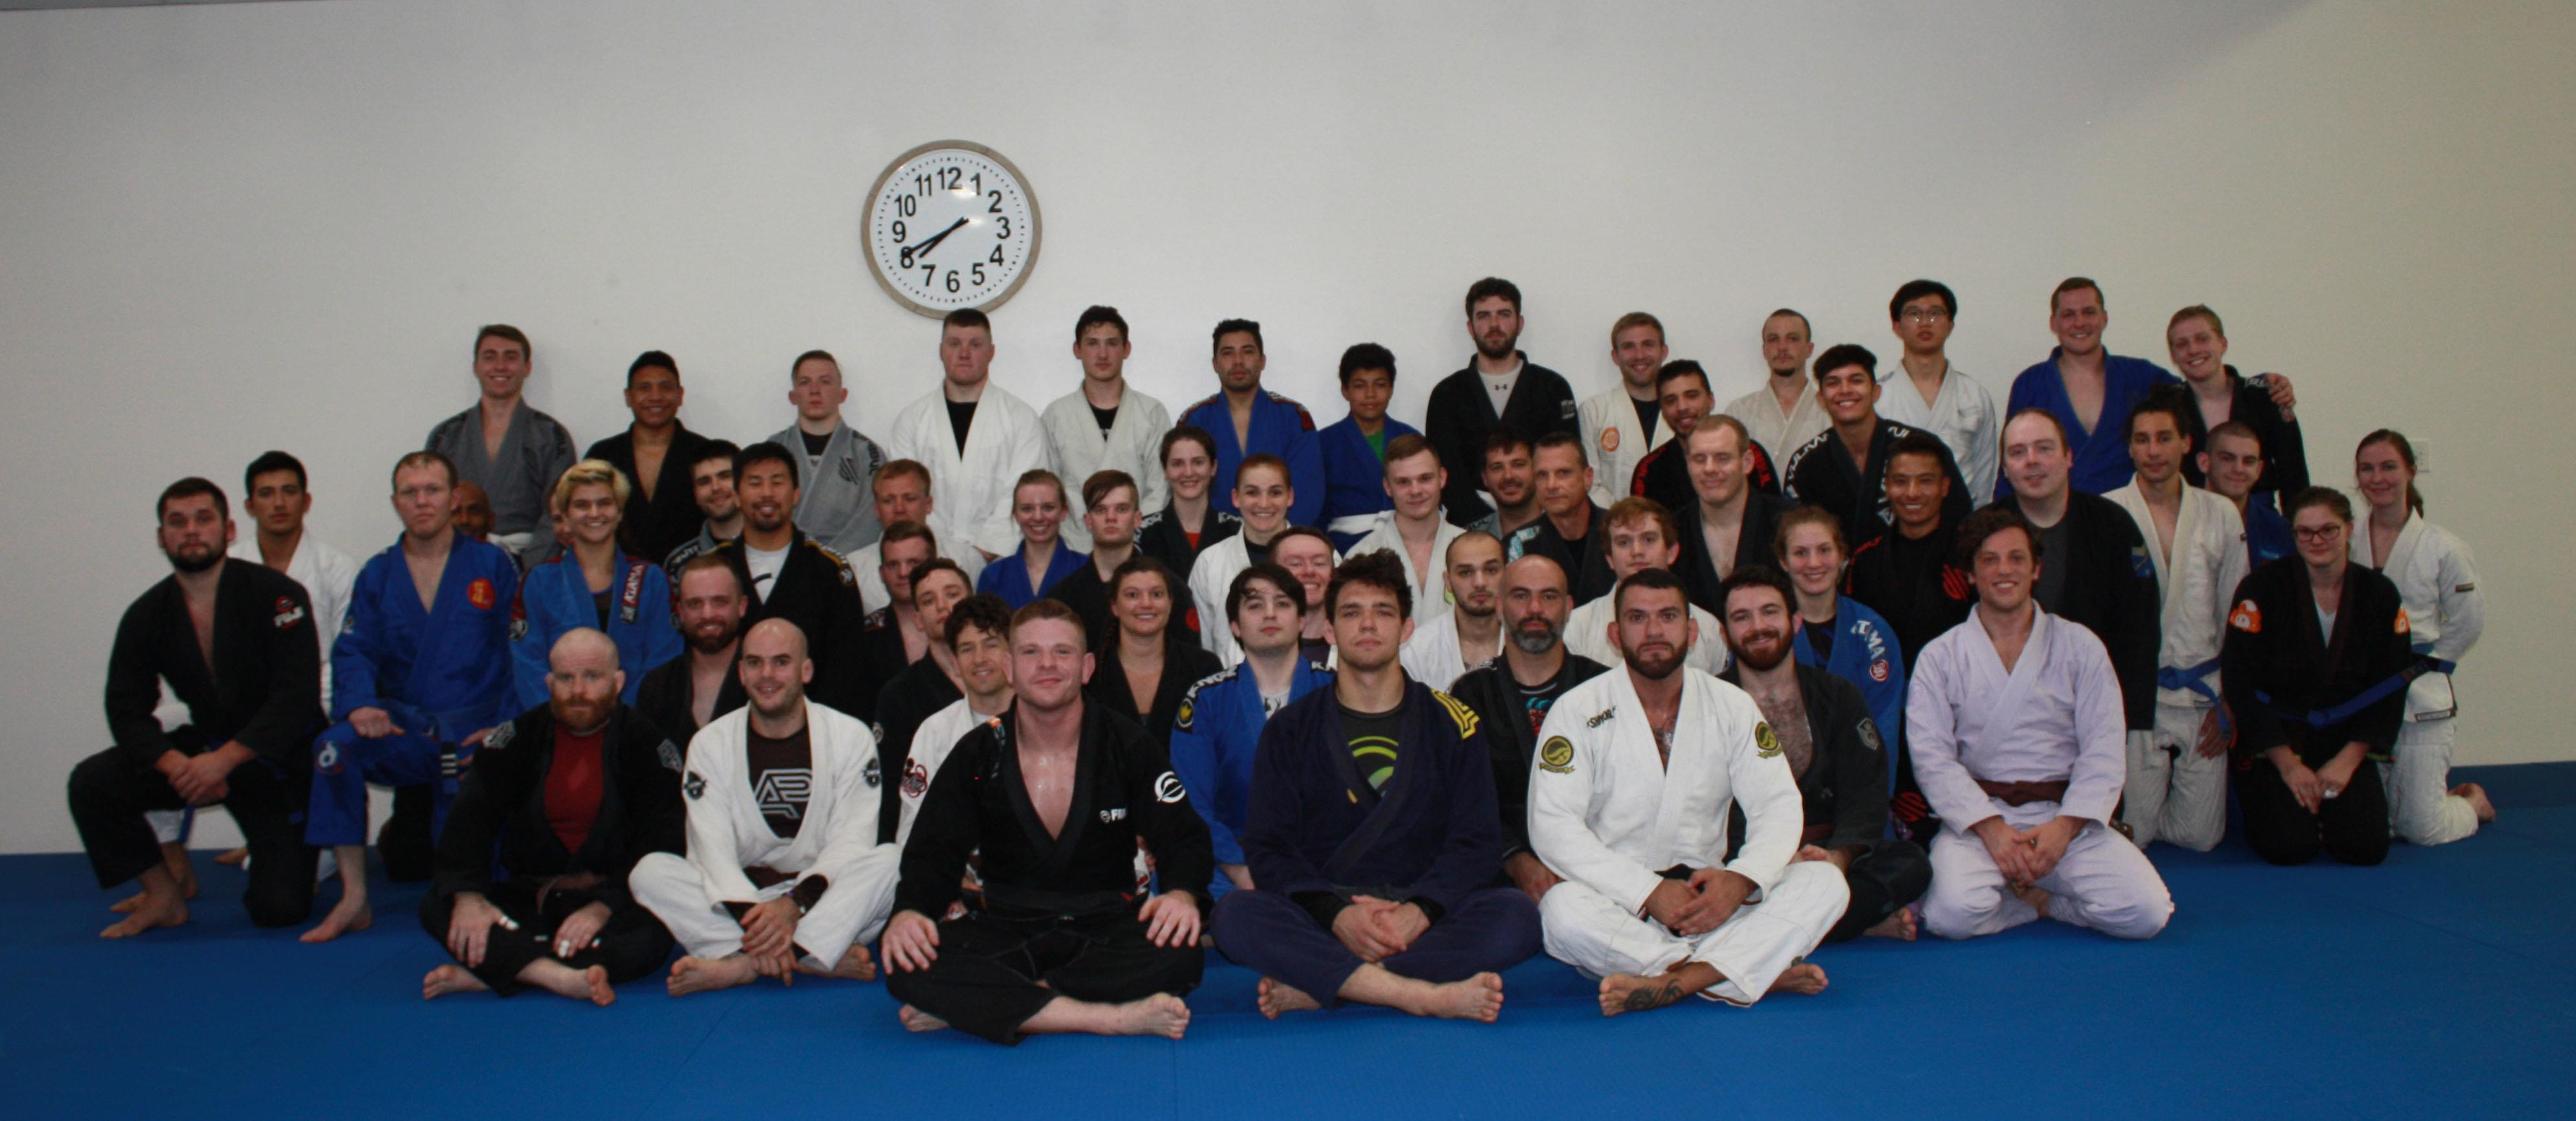 Team Citadel BJJ Iowa City Brazilian Jiu Jitsu IC